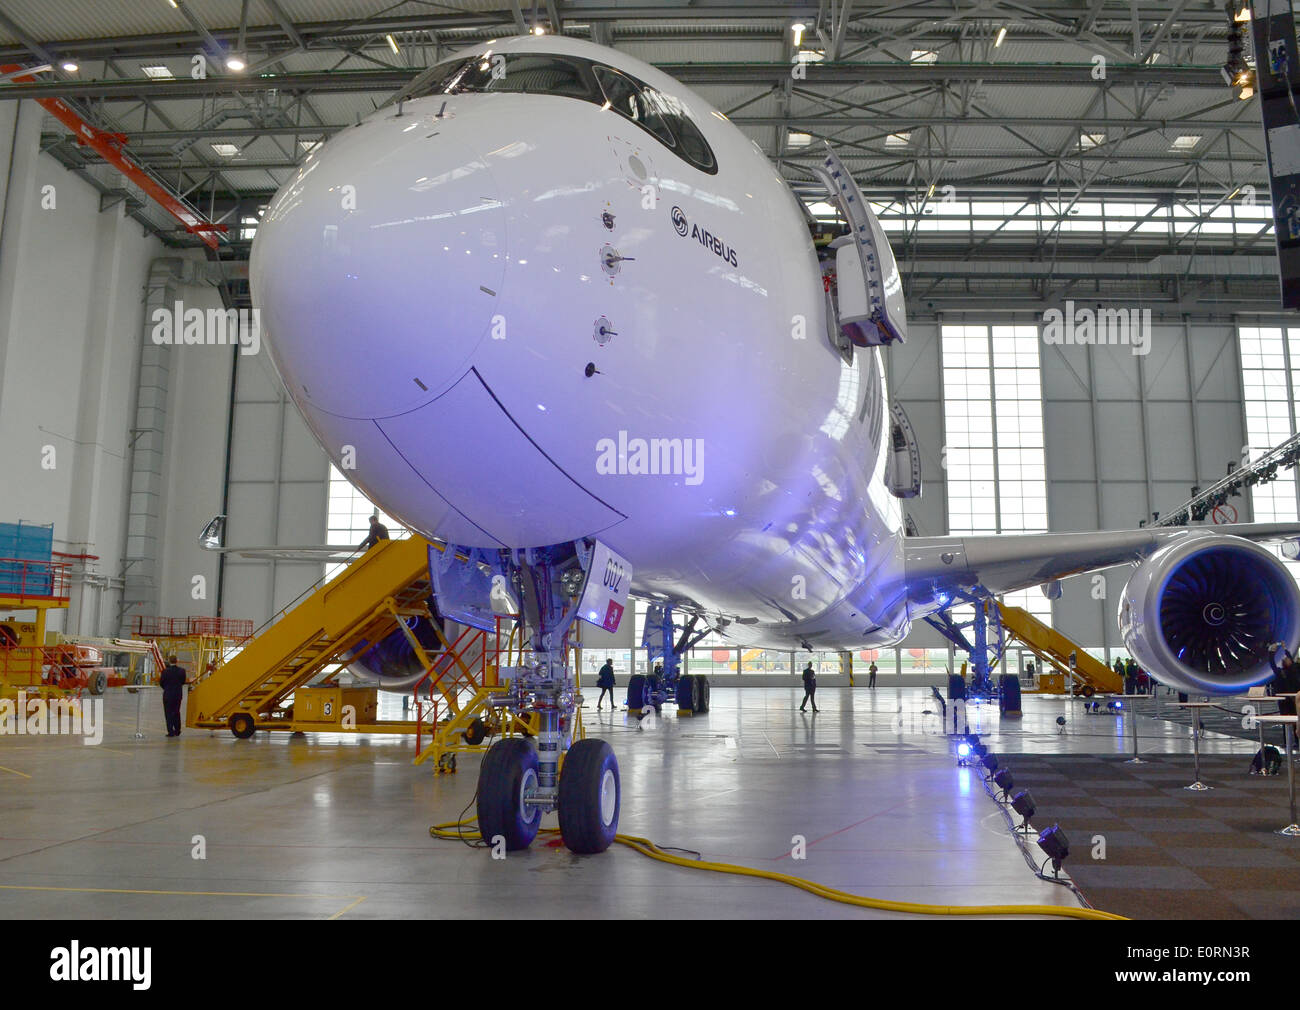 An Airbus A350XWB at the Airbus headquarters in Finkenwerder, Hamburg, GermanyStock Photo